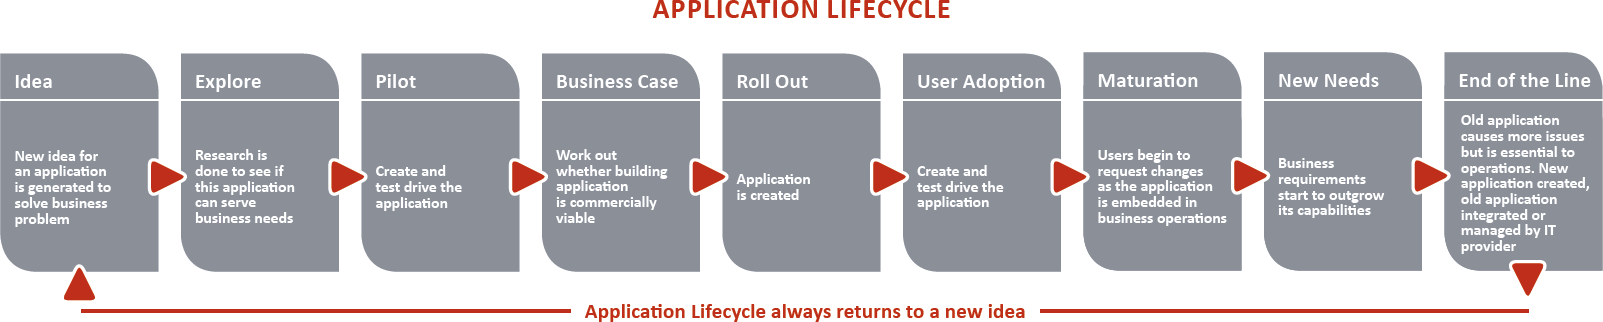 5 Five Signs You Need New Technology: Application Lifecycle Management